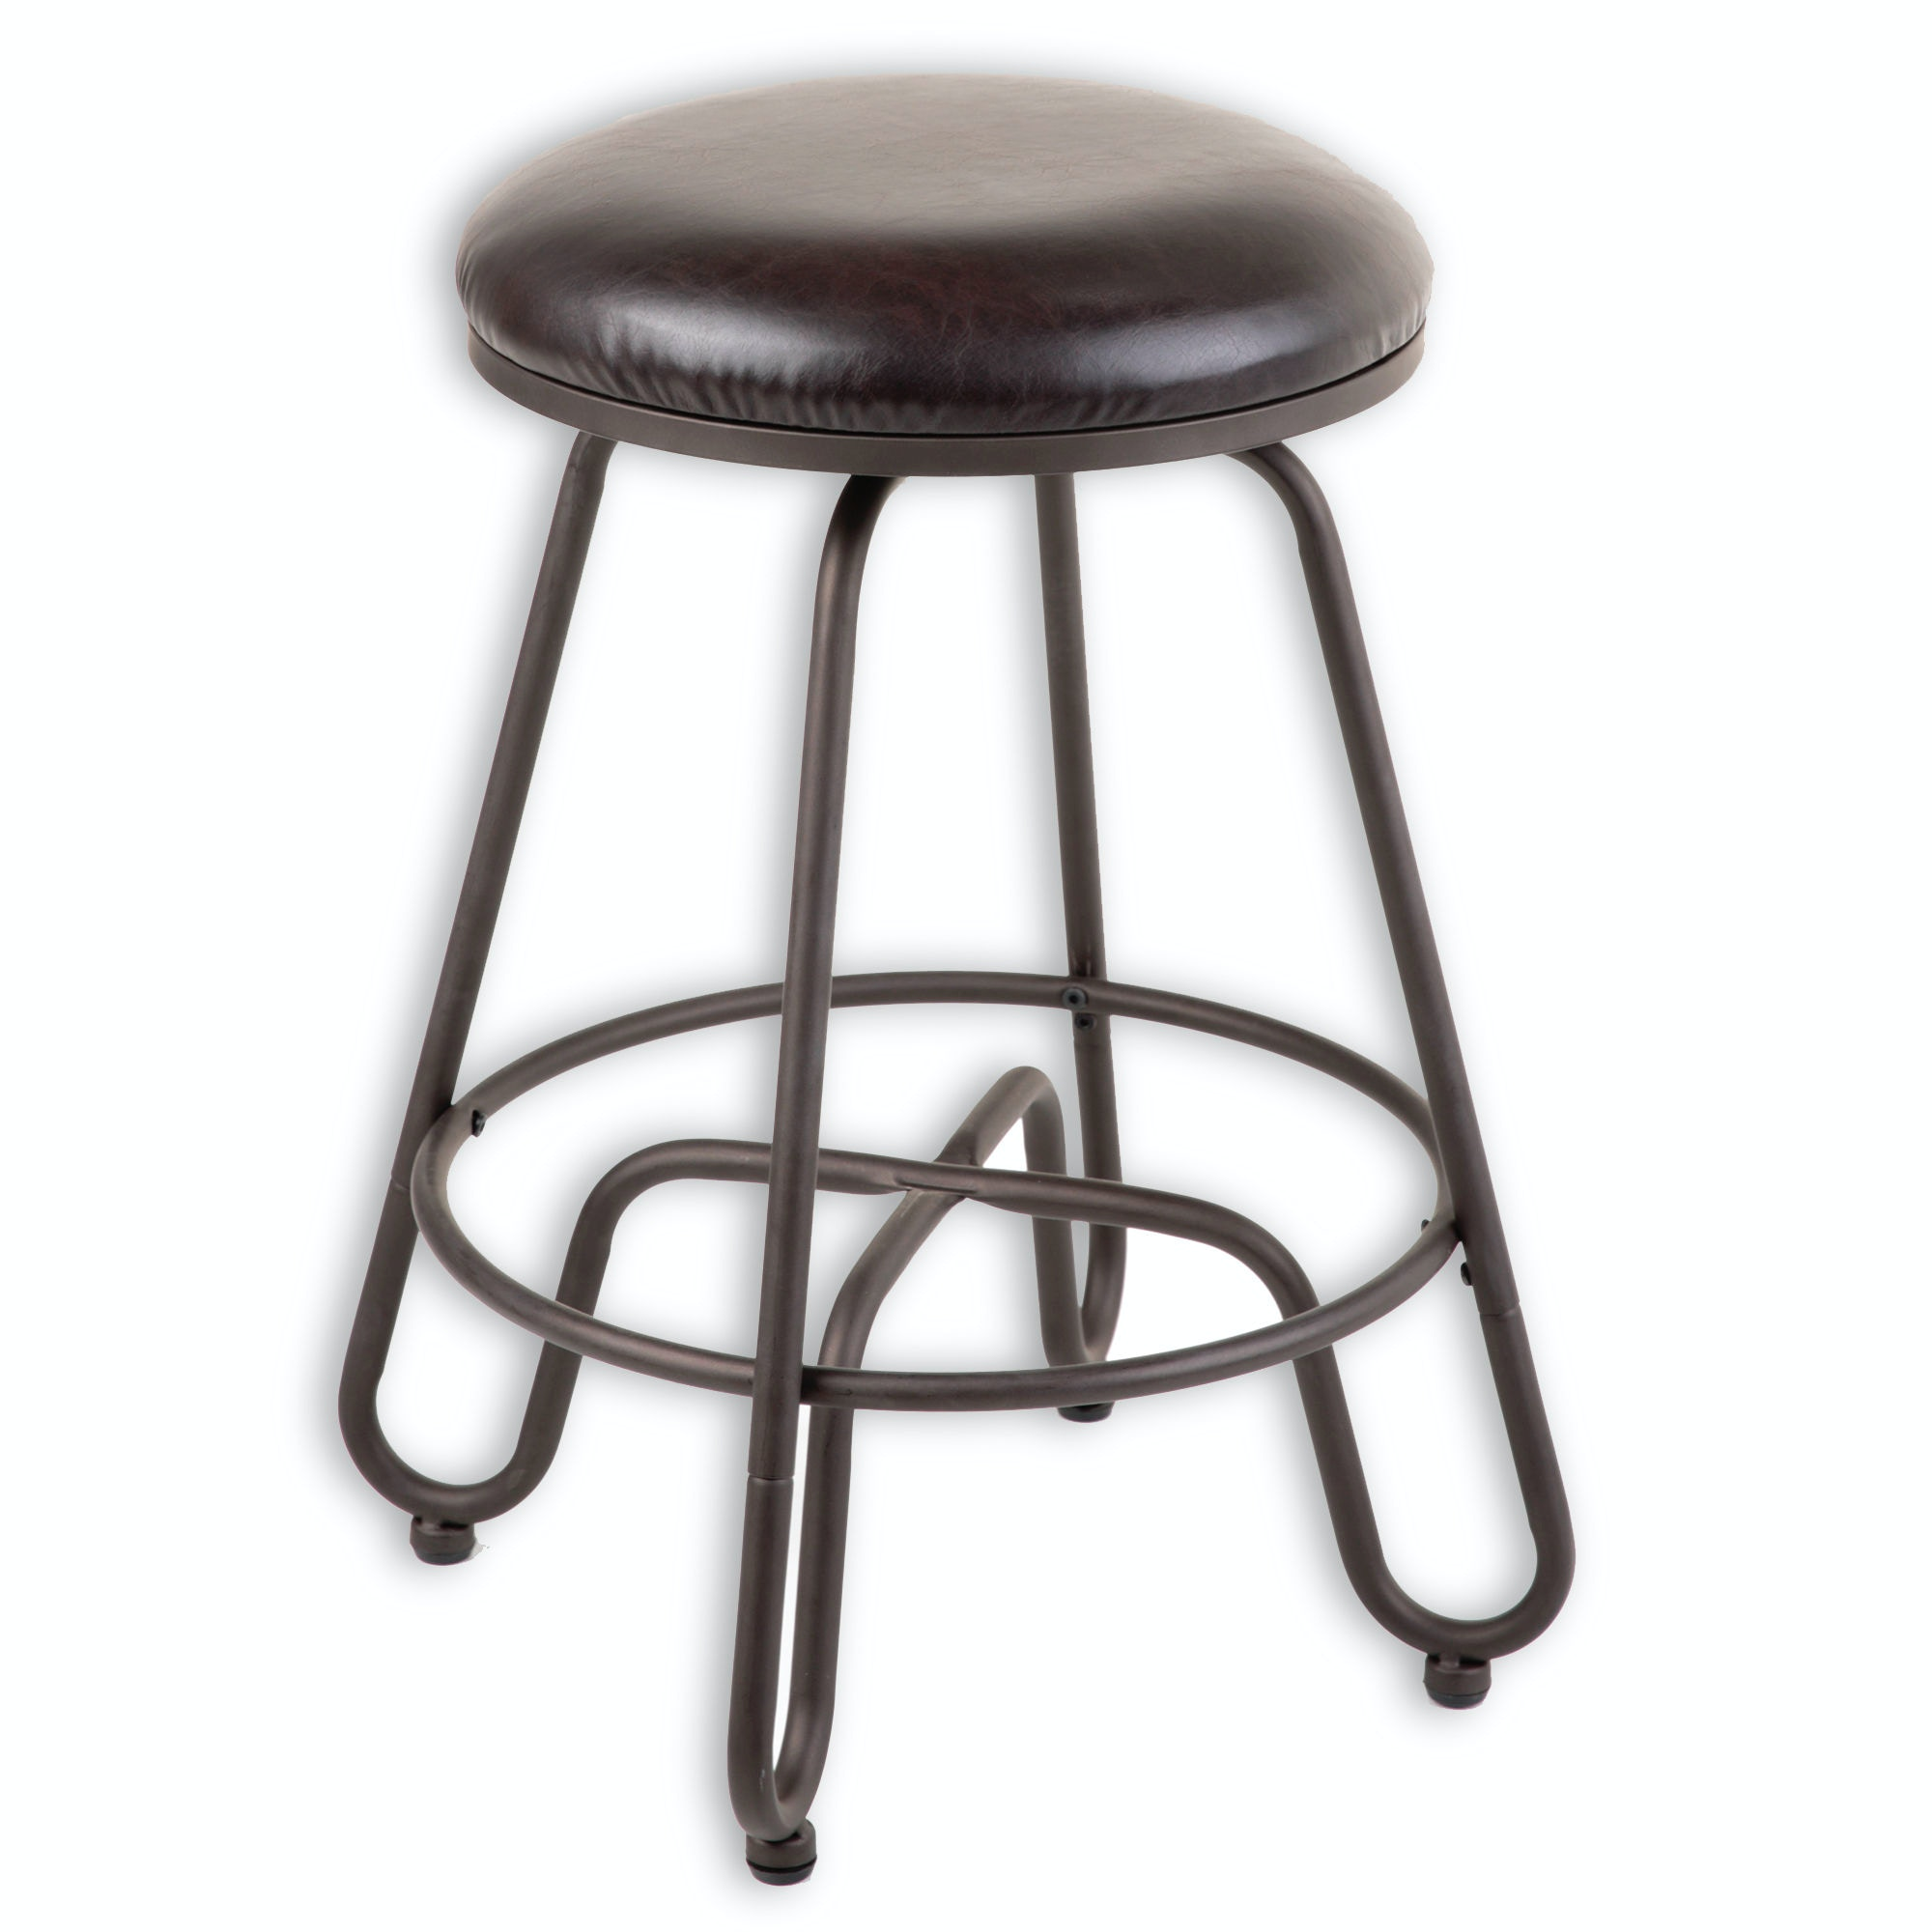 30-Inch Seat Height Leggett /& Platt Lincoln Swivel Seat Bar Stool with Brown Crystal Finished Metal Frame and Chocolate Faux Leather Upholstery